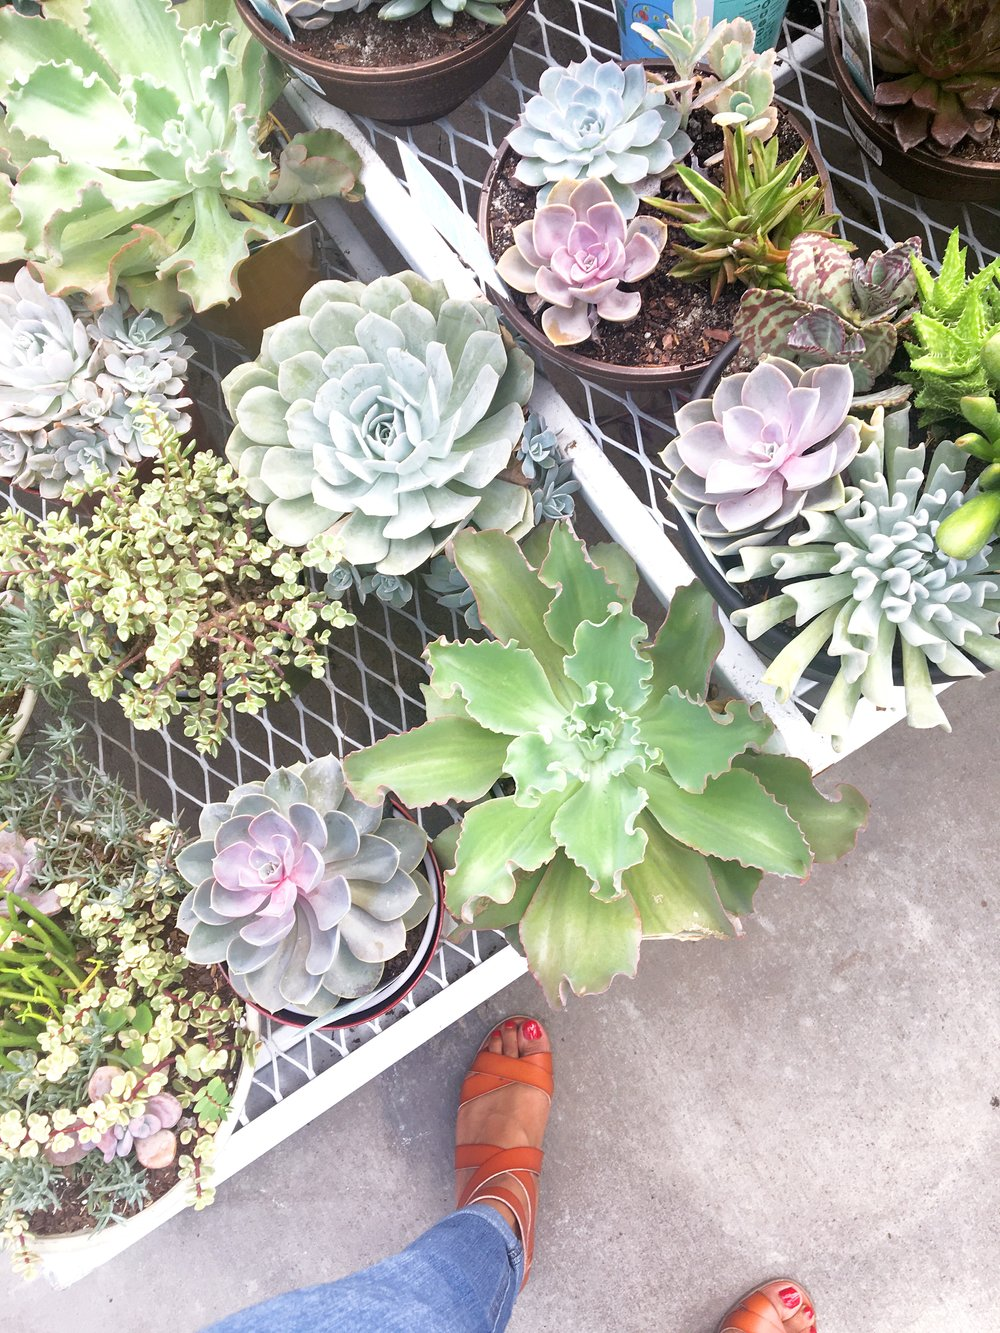 Shopping for succulents in Lowe's